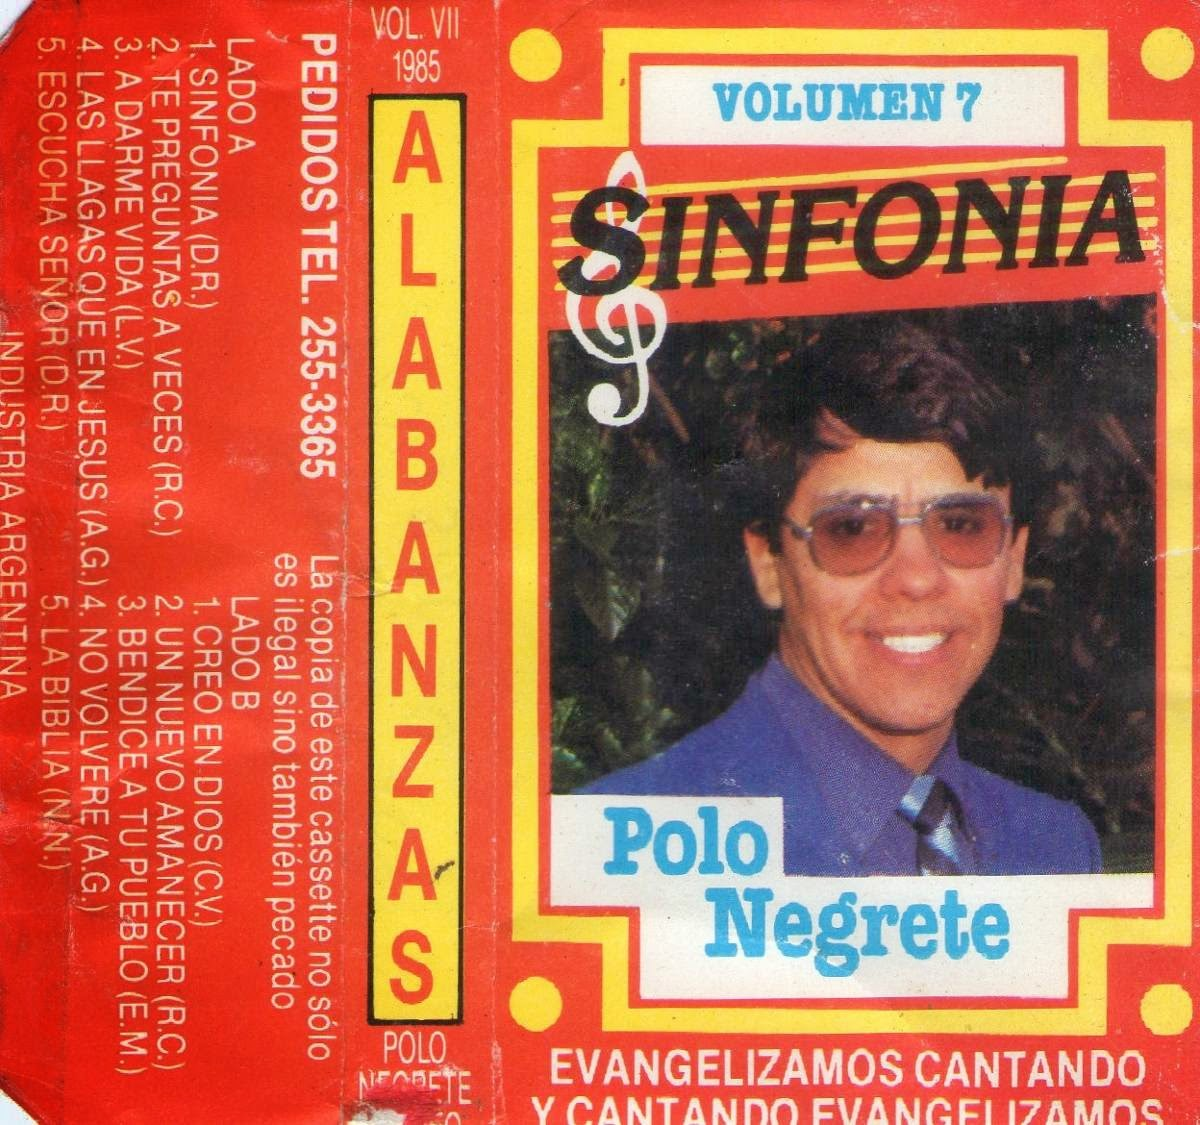 Polo Negrete-Vol 7-Sinfonía-